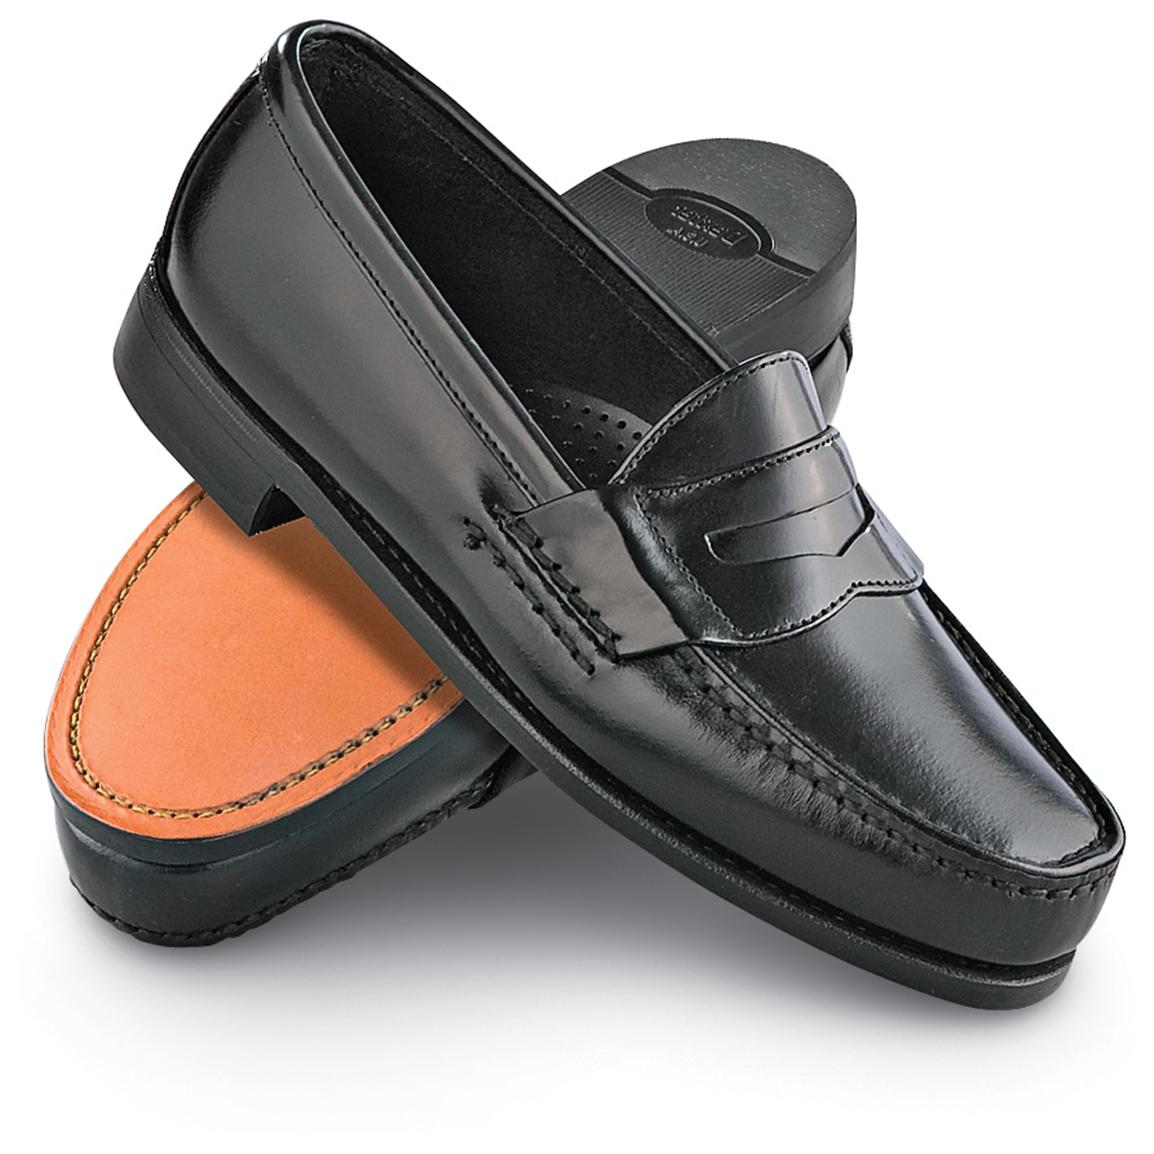 dexter men Shop dexter caimbridge men's oxford shoes at payless to find the lowest prices on men's oxford shoes free shipping +$25, free.